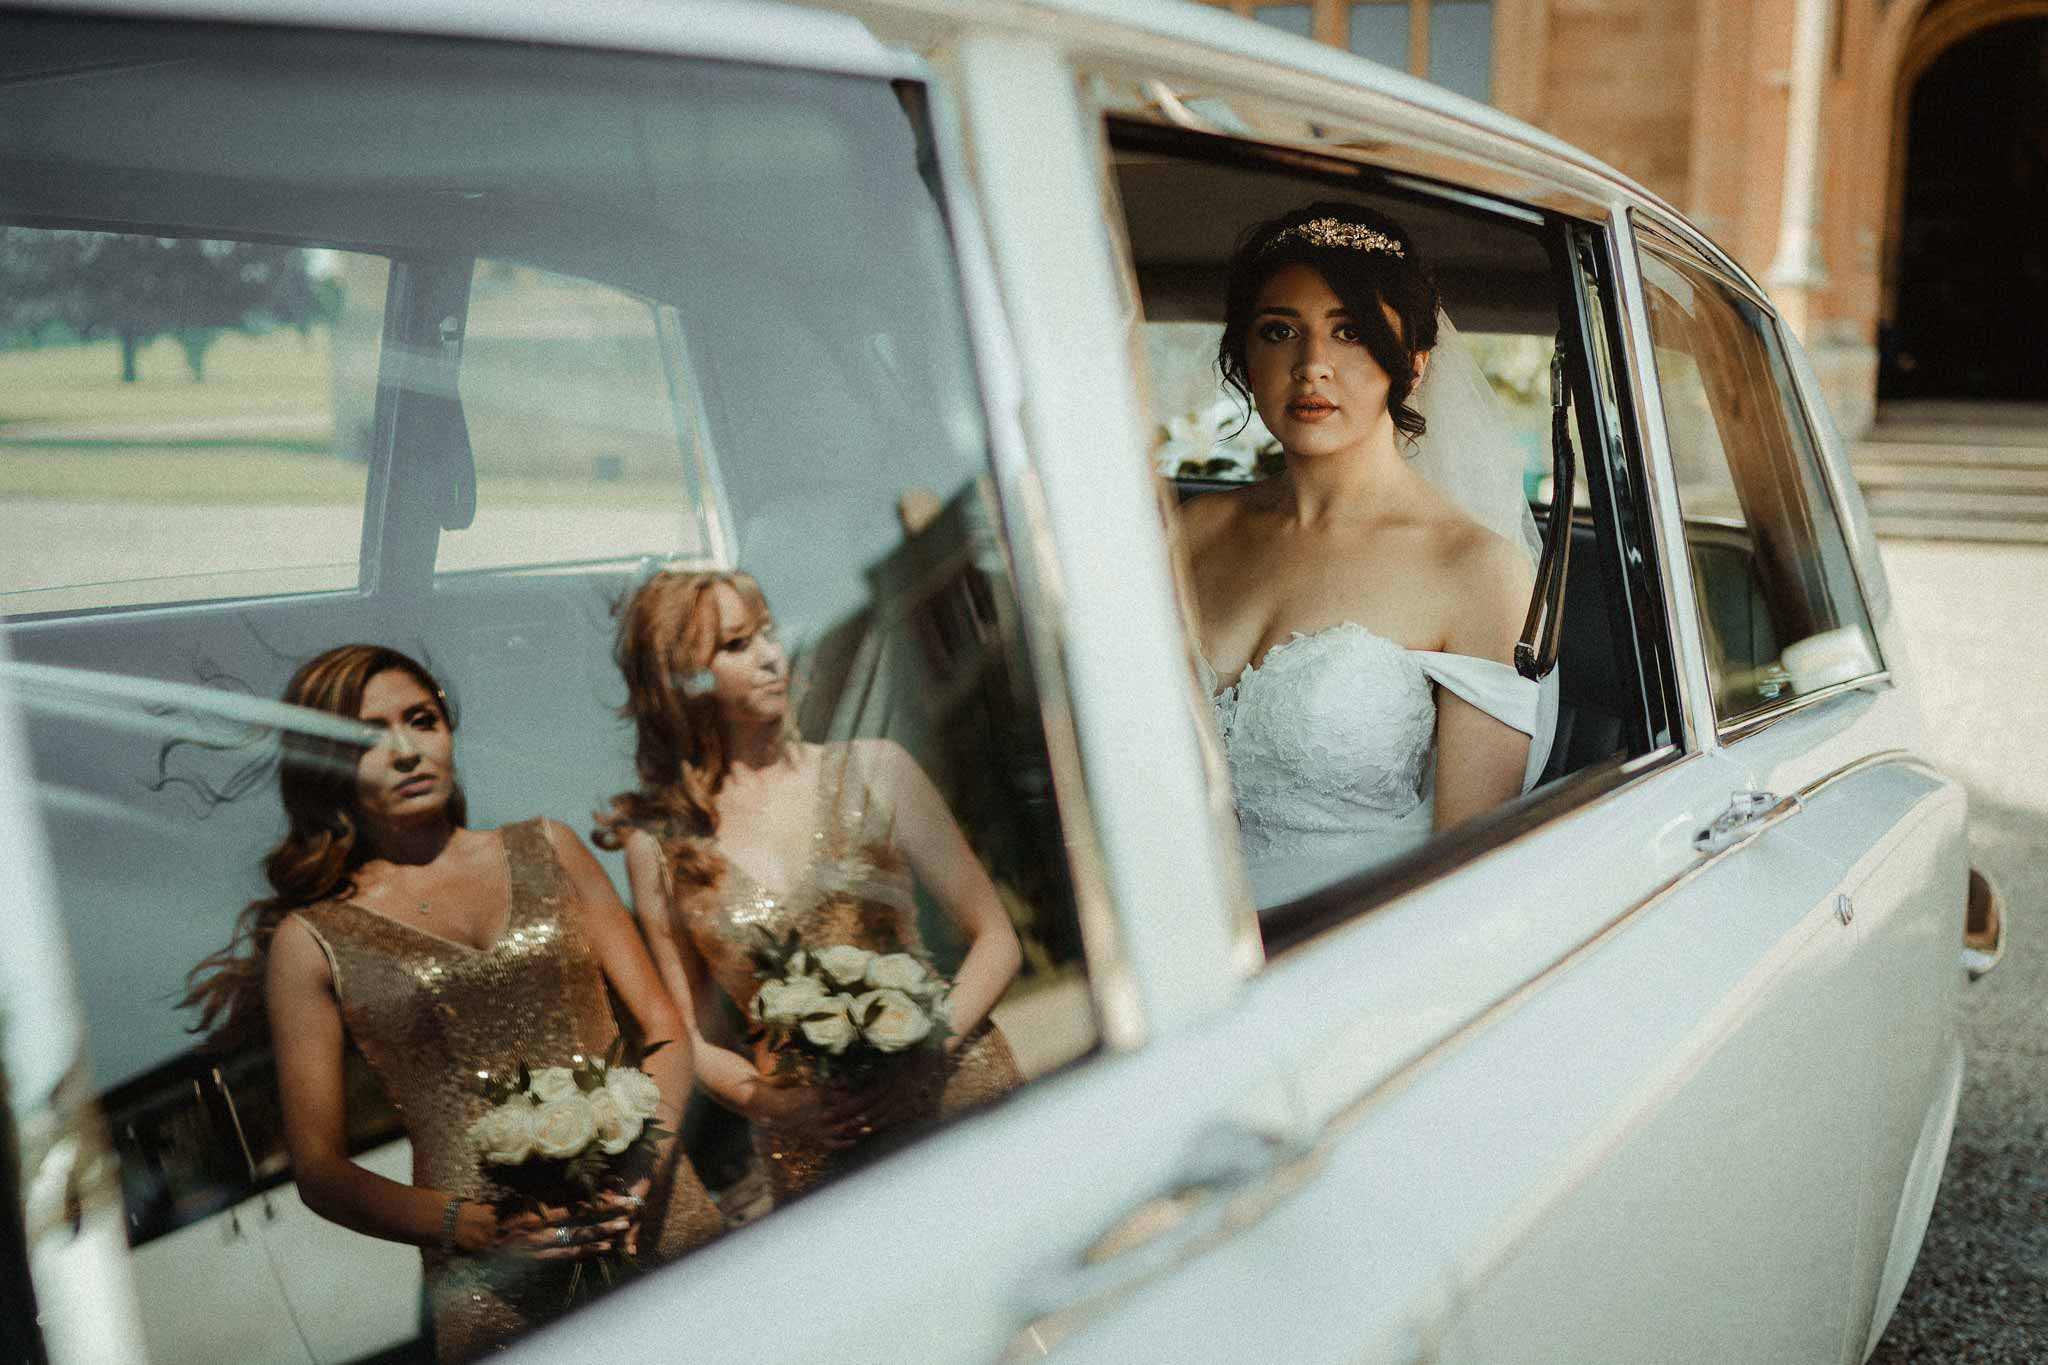 Bride in her wedding car, as the reflection of her bridesmaids are shown in the window| Fine art photography